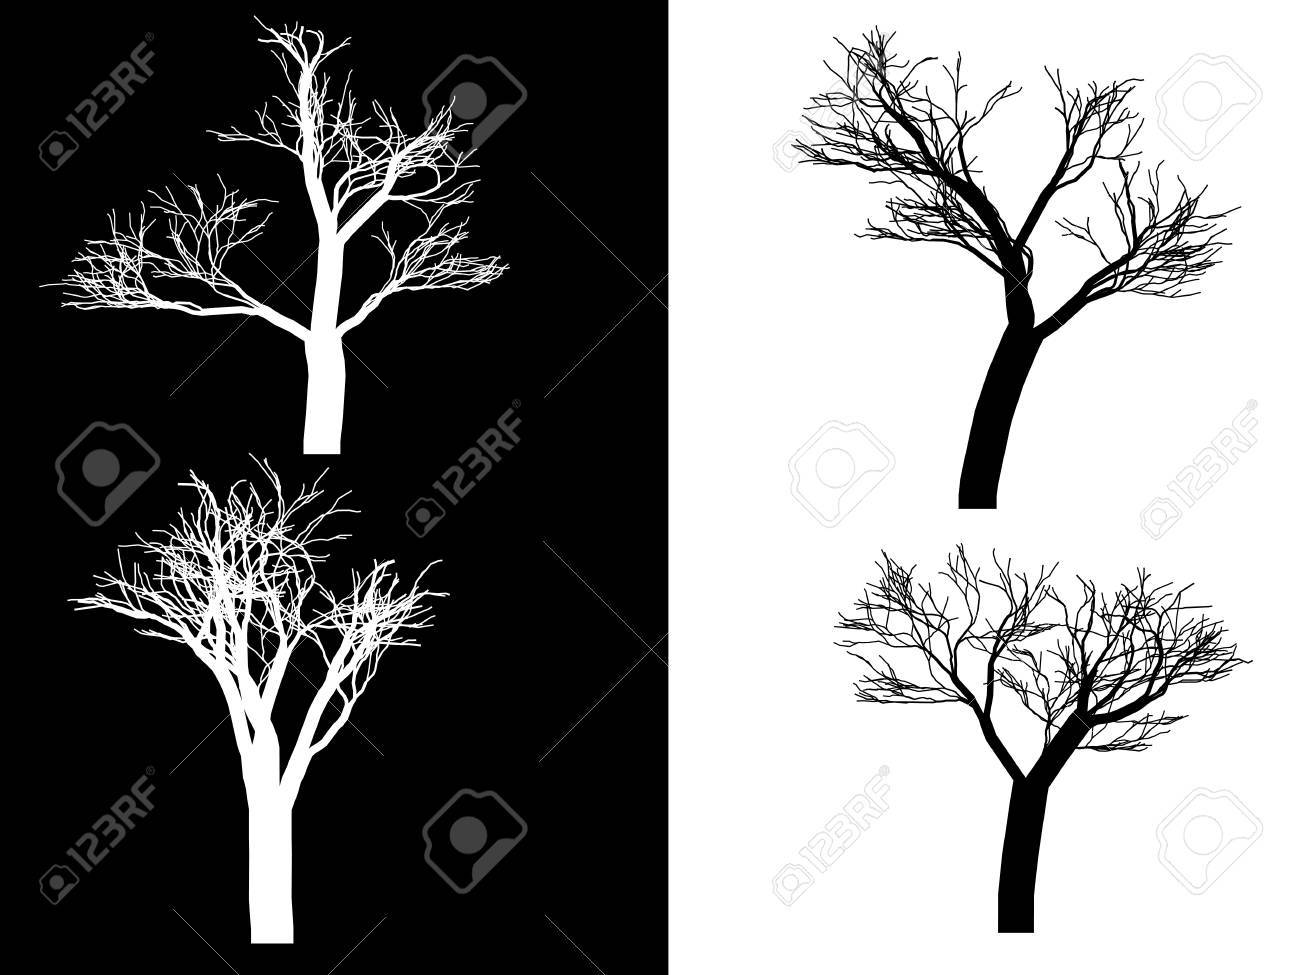 Illustration, trees isolated on a black and white background Stock Vector - 8236756